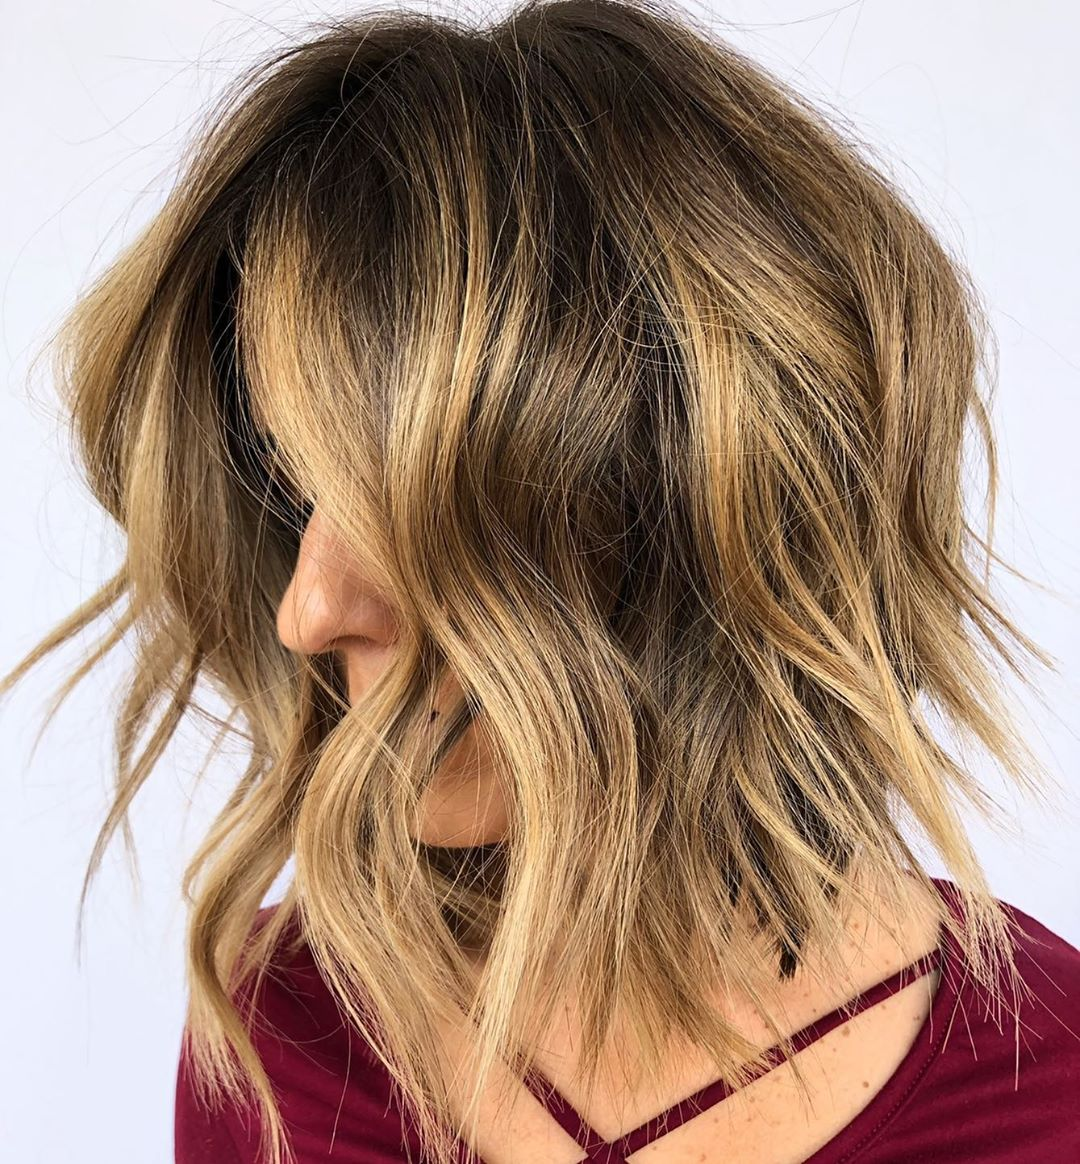 Shaggy Short Bob with Metallic Blonde Balayage